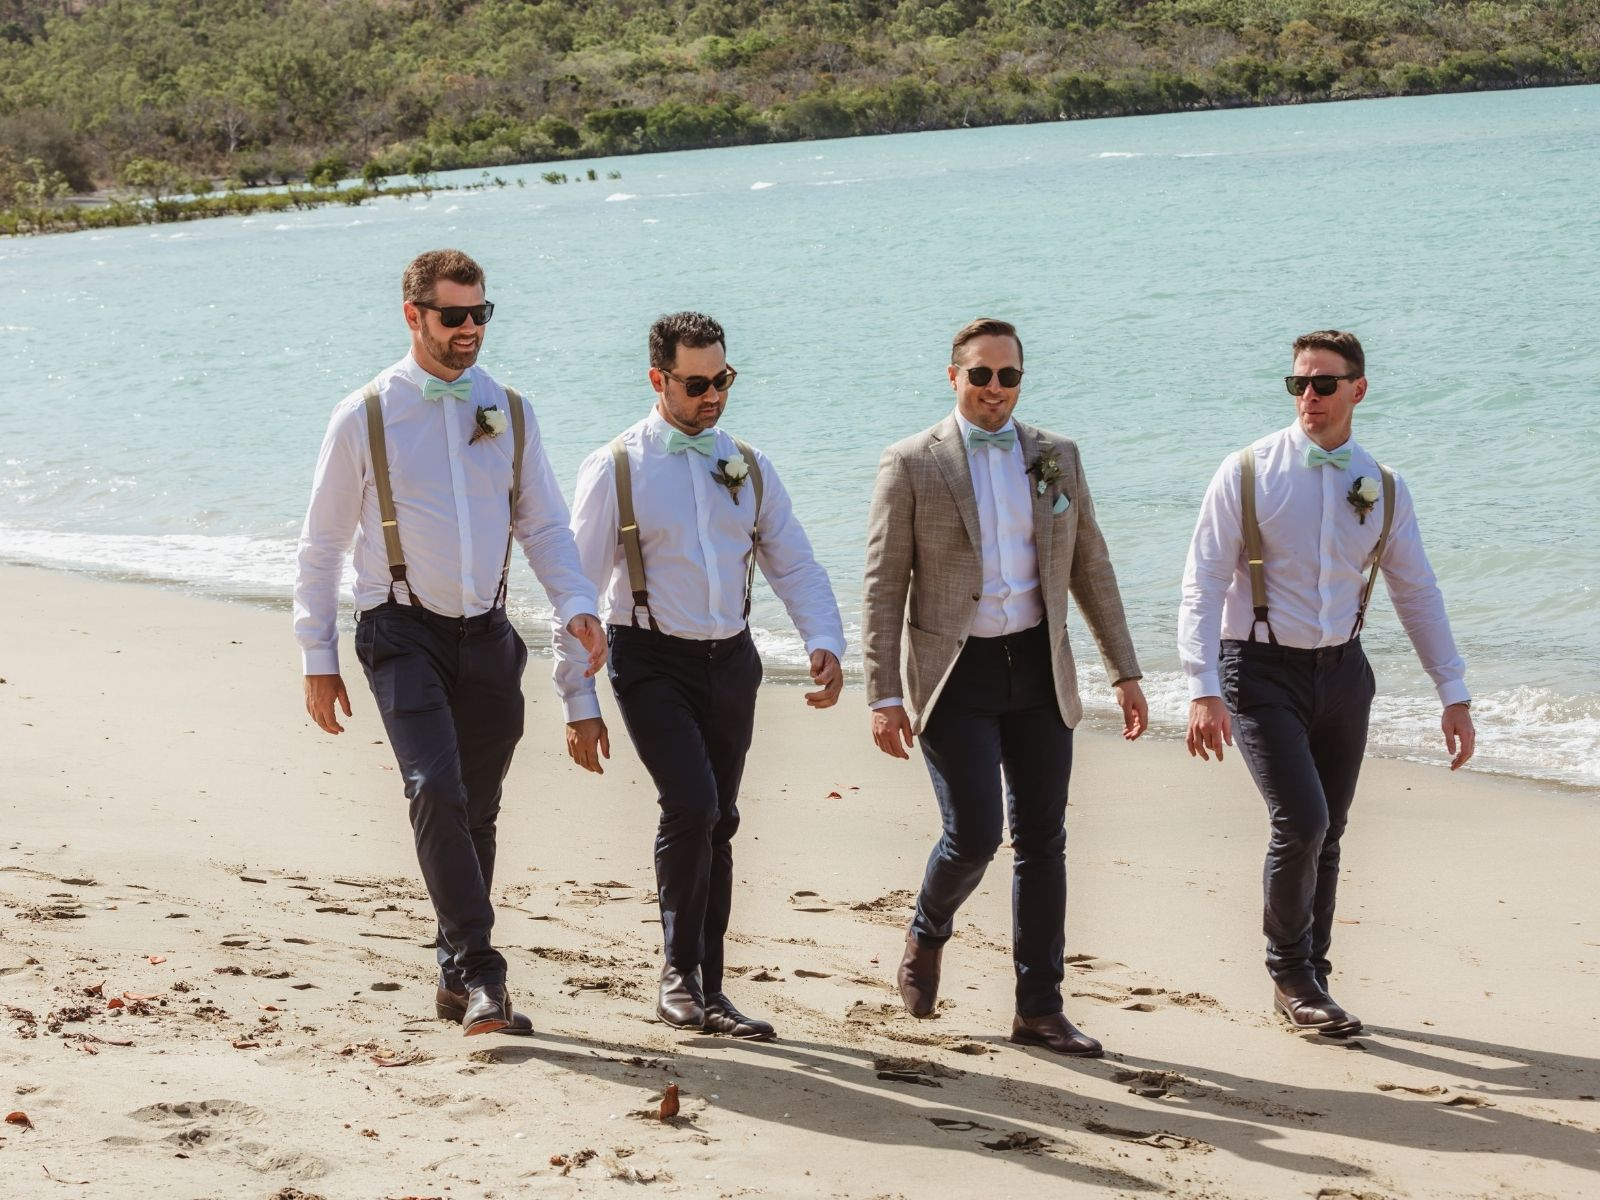 Groom with groomsmen walking on beach at Paradise Cove Resort in the Whitsundays